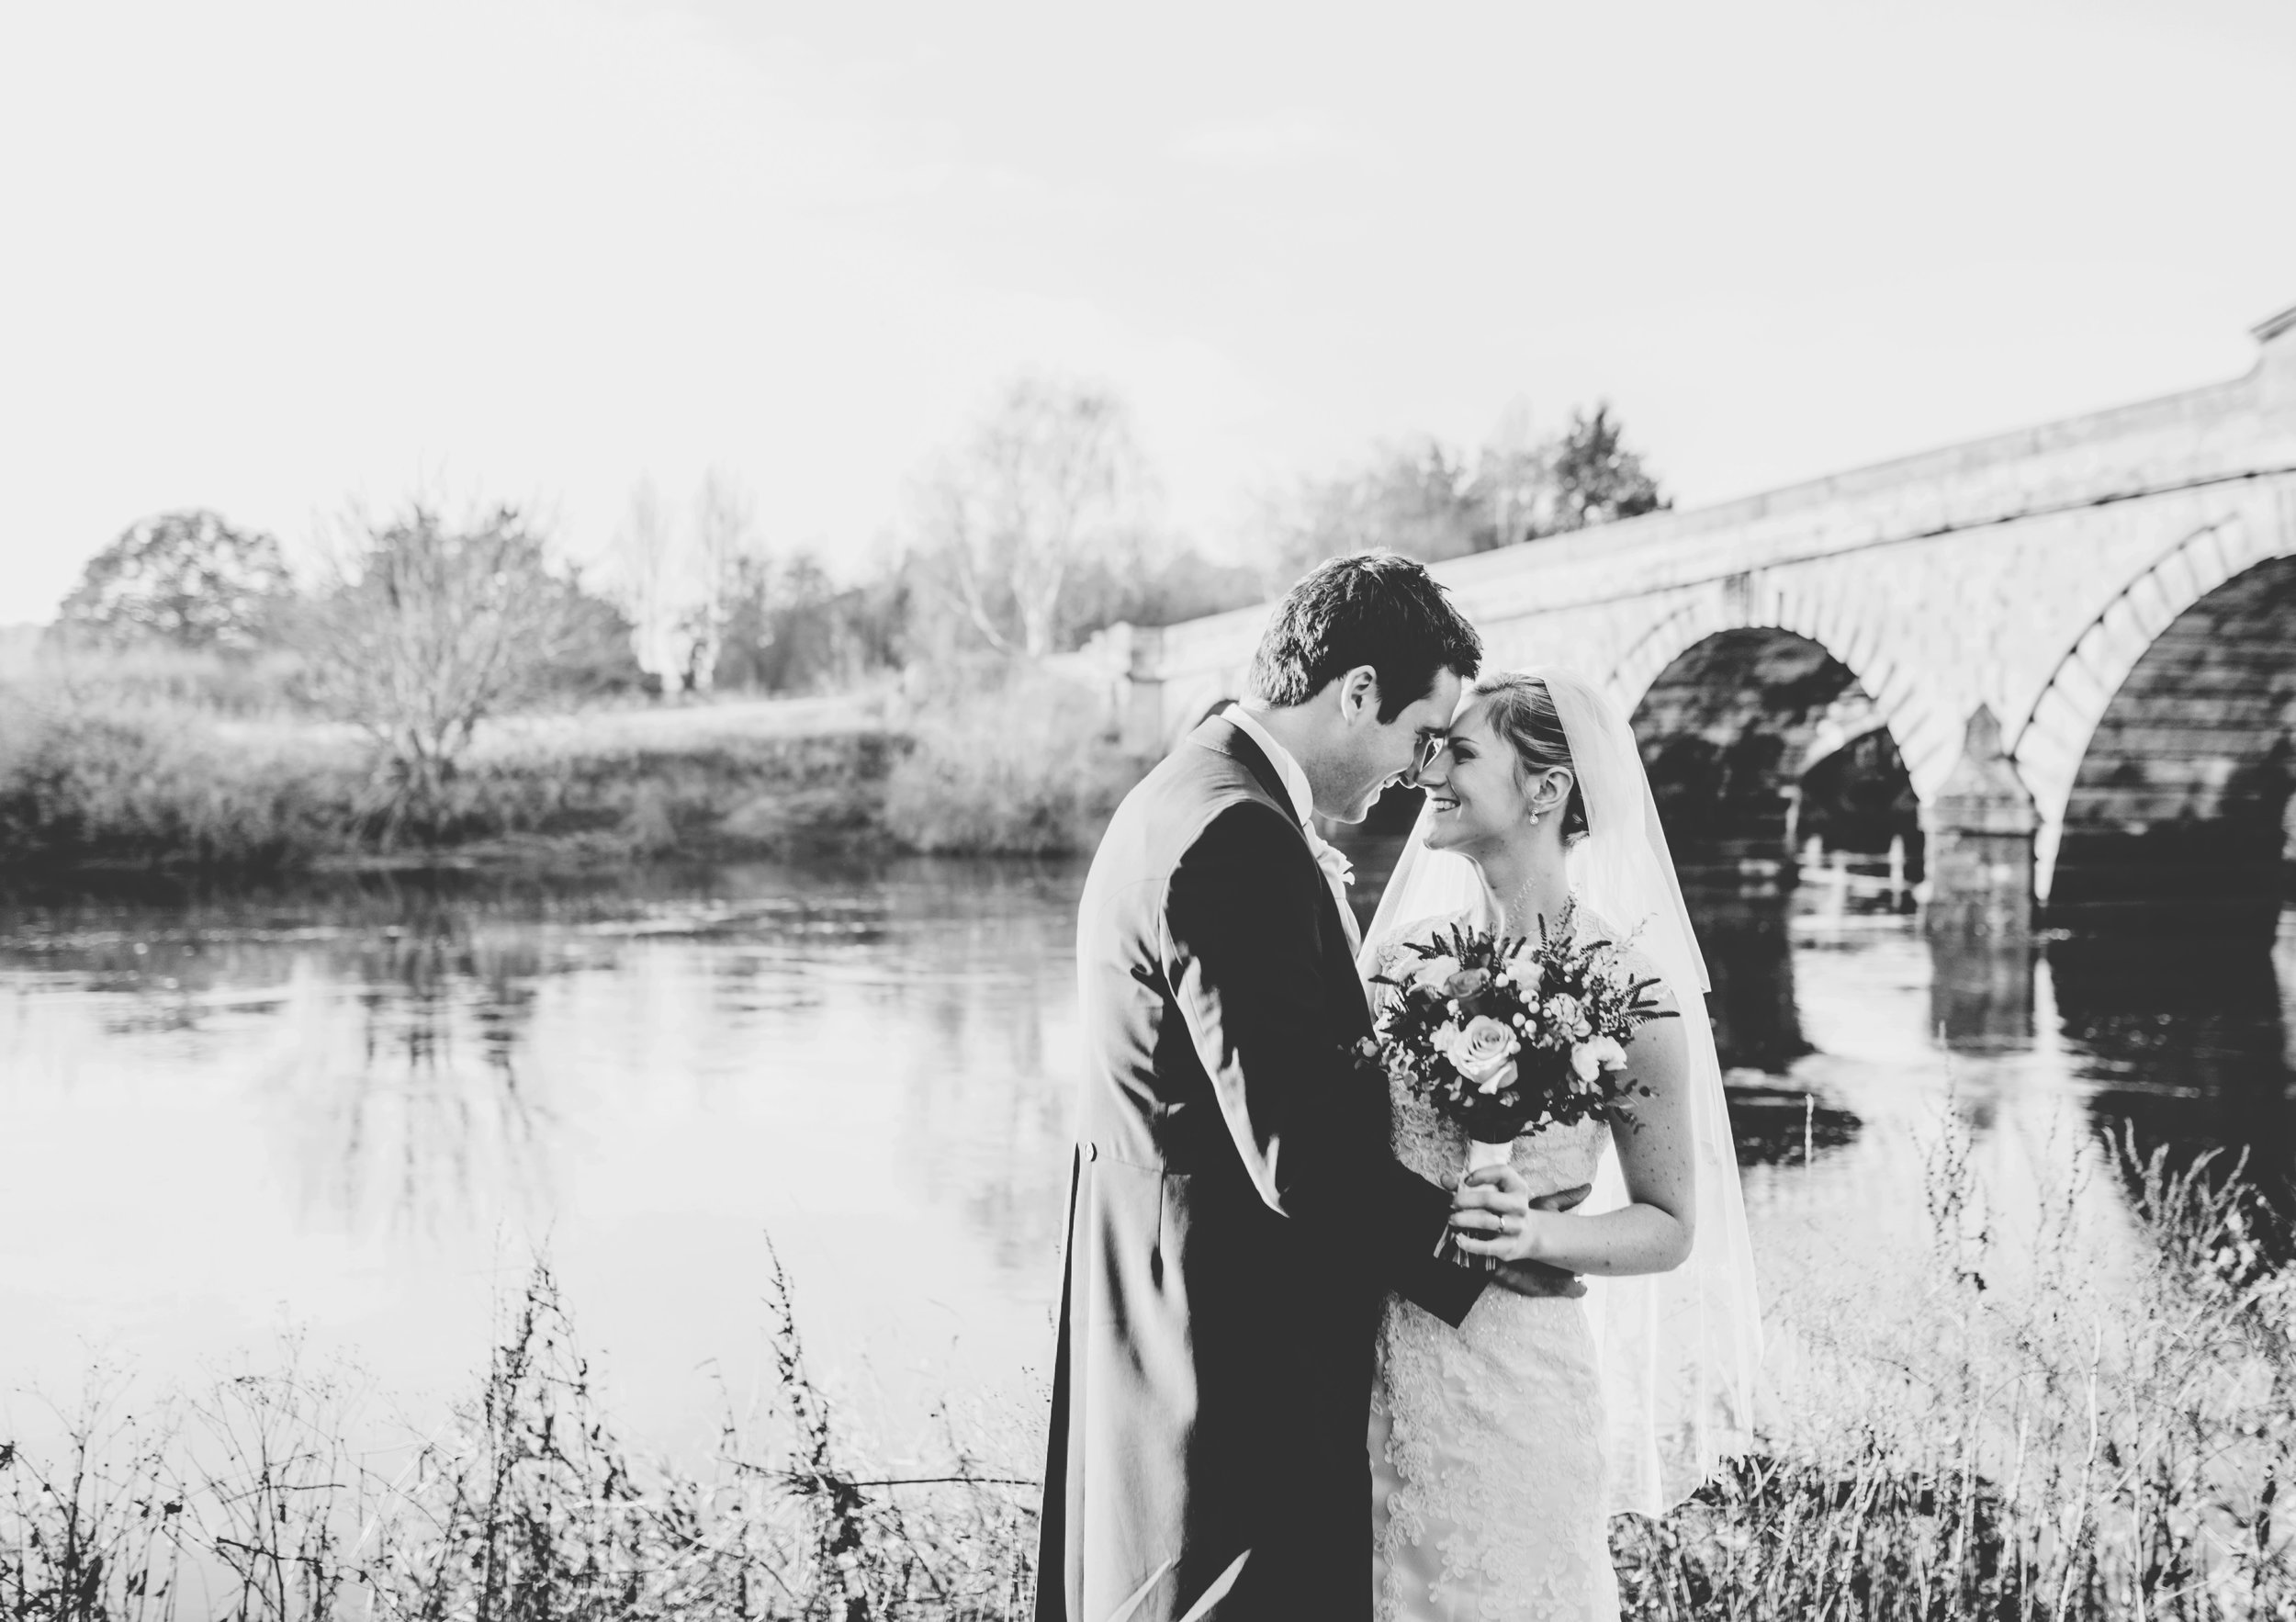 Mytton and mermaid winter wedding pictures